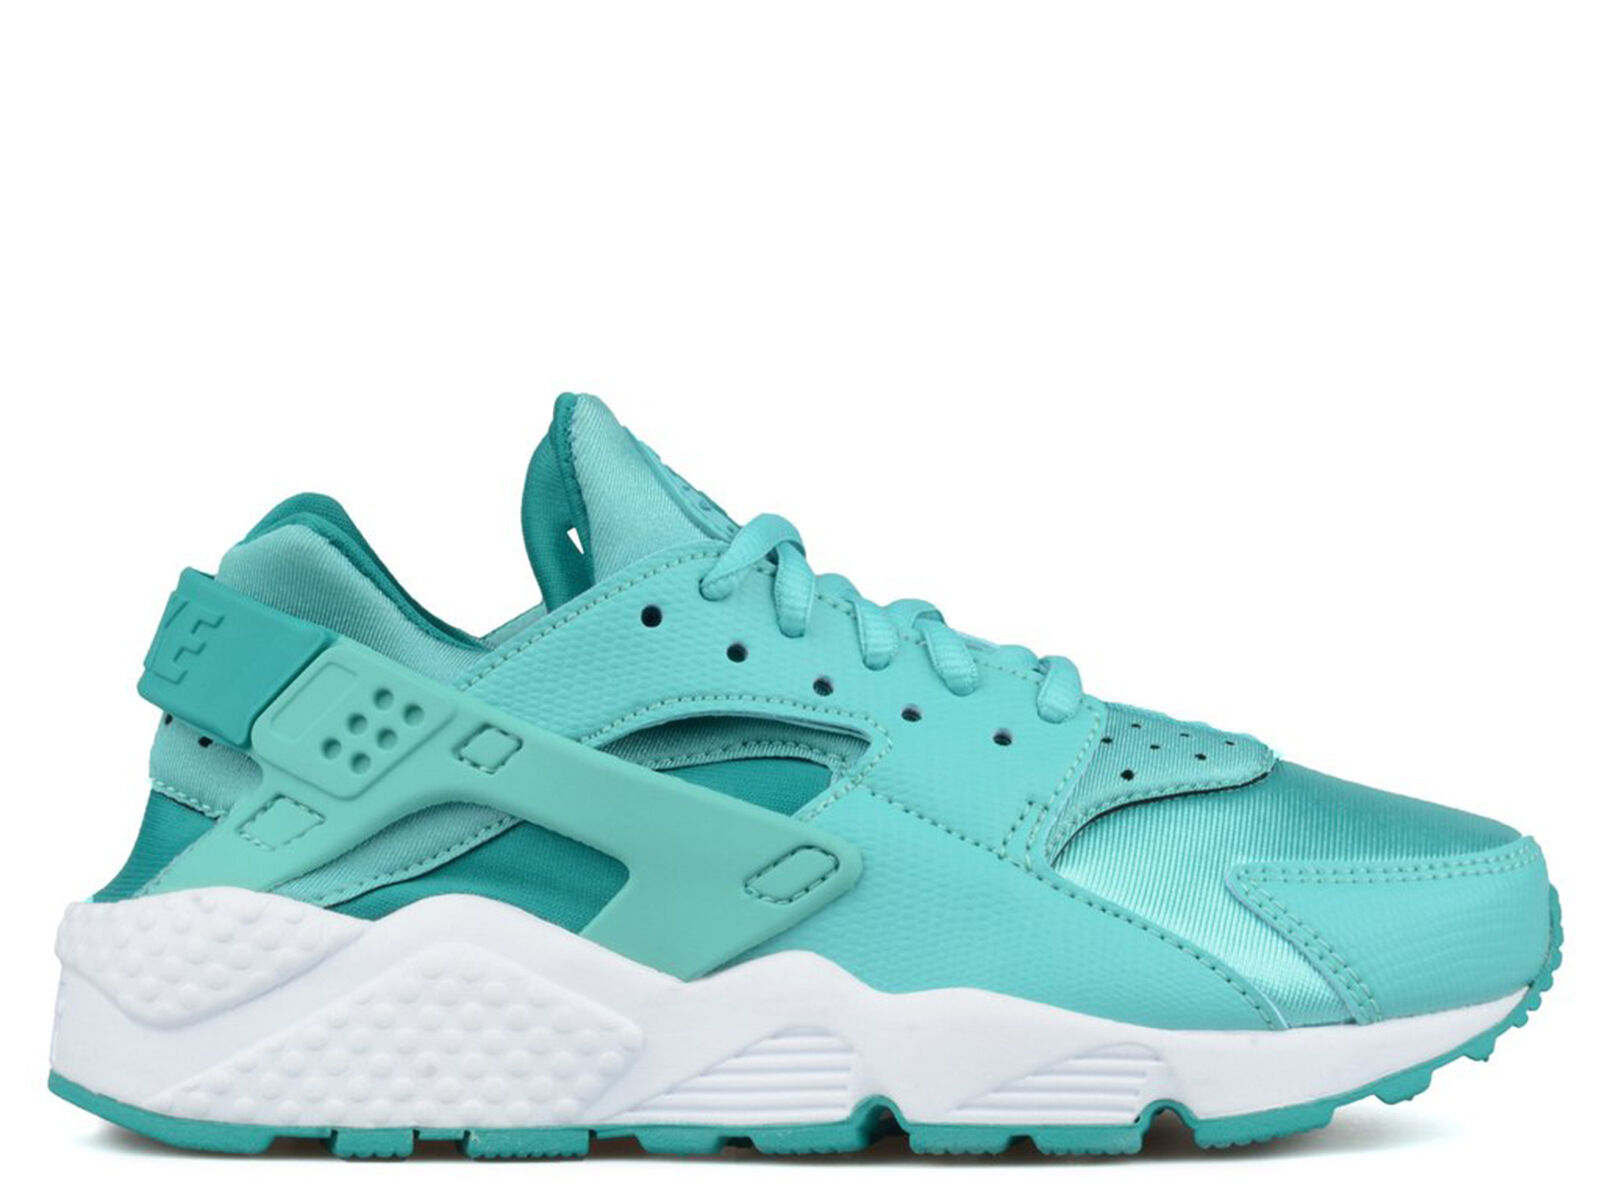 Brand New Nike Air Huarache Run Women's Athletic Fashion Sneakers [634835 302]